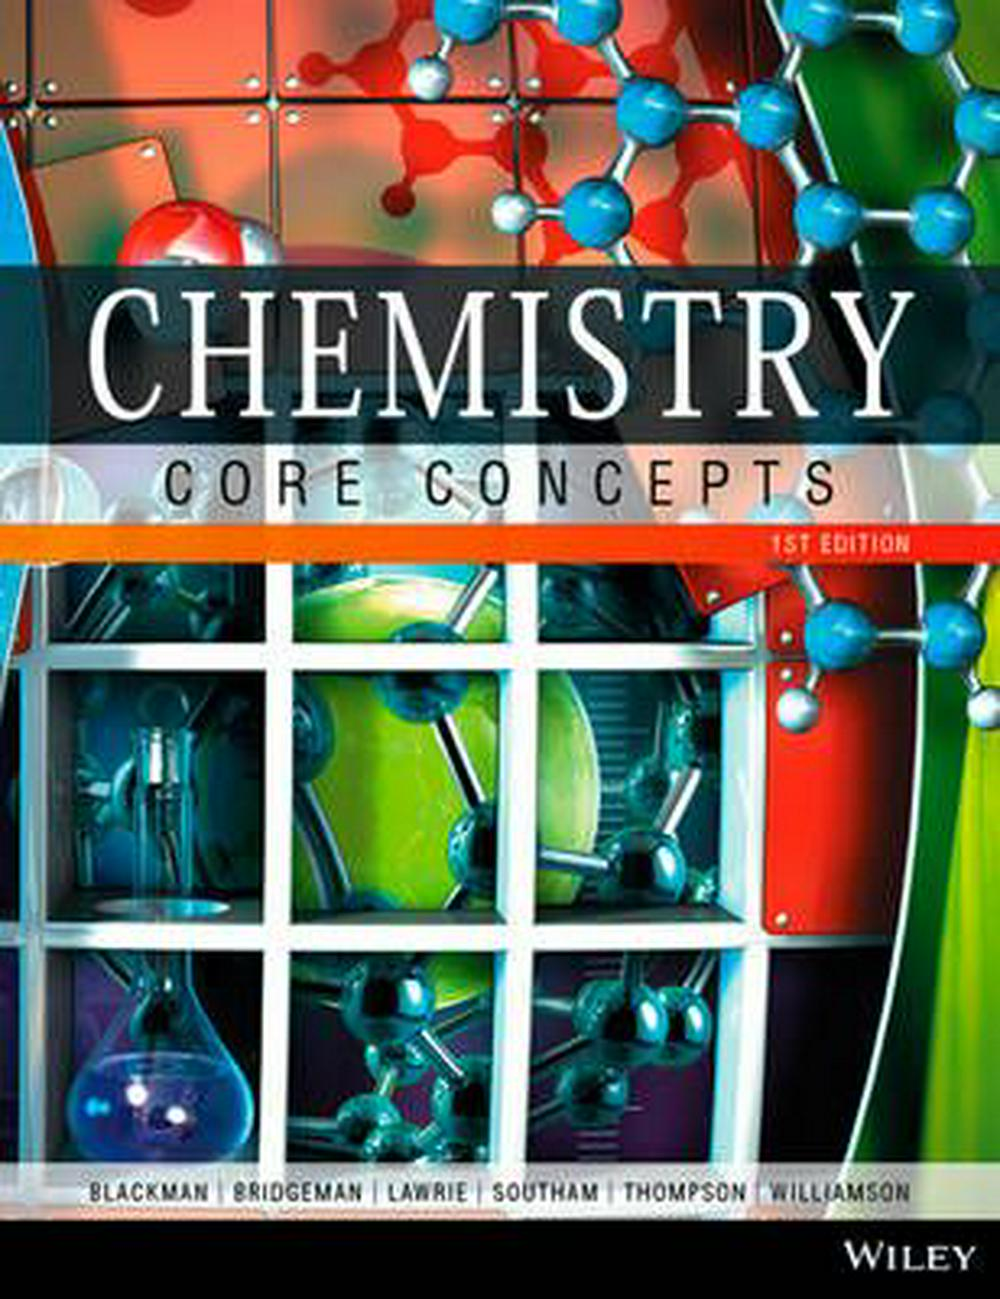 ChemistryCore Concepts 1st Edition